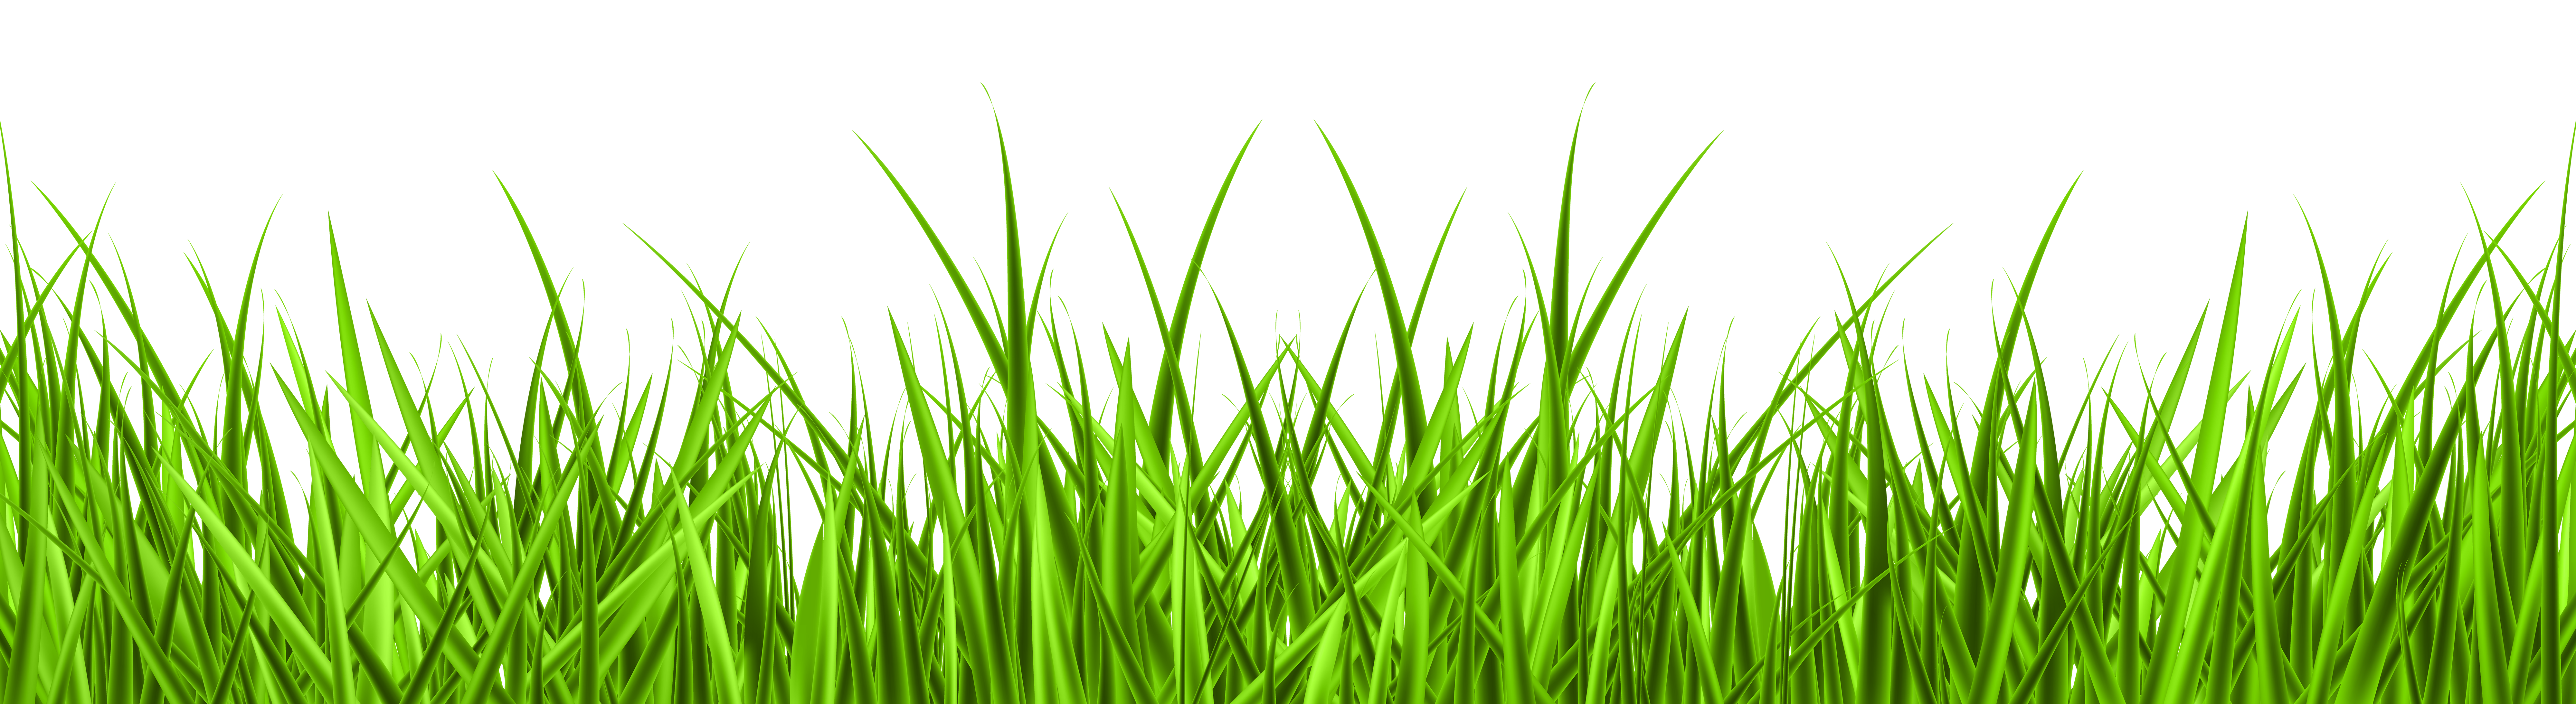 Grass png. Clip art image gallery